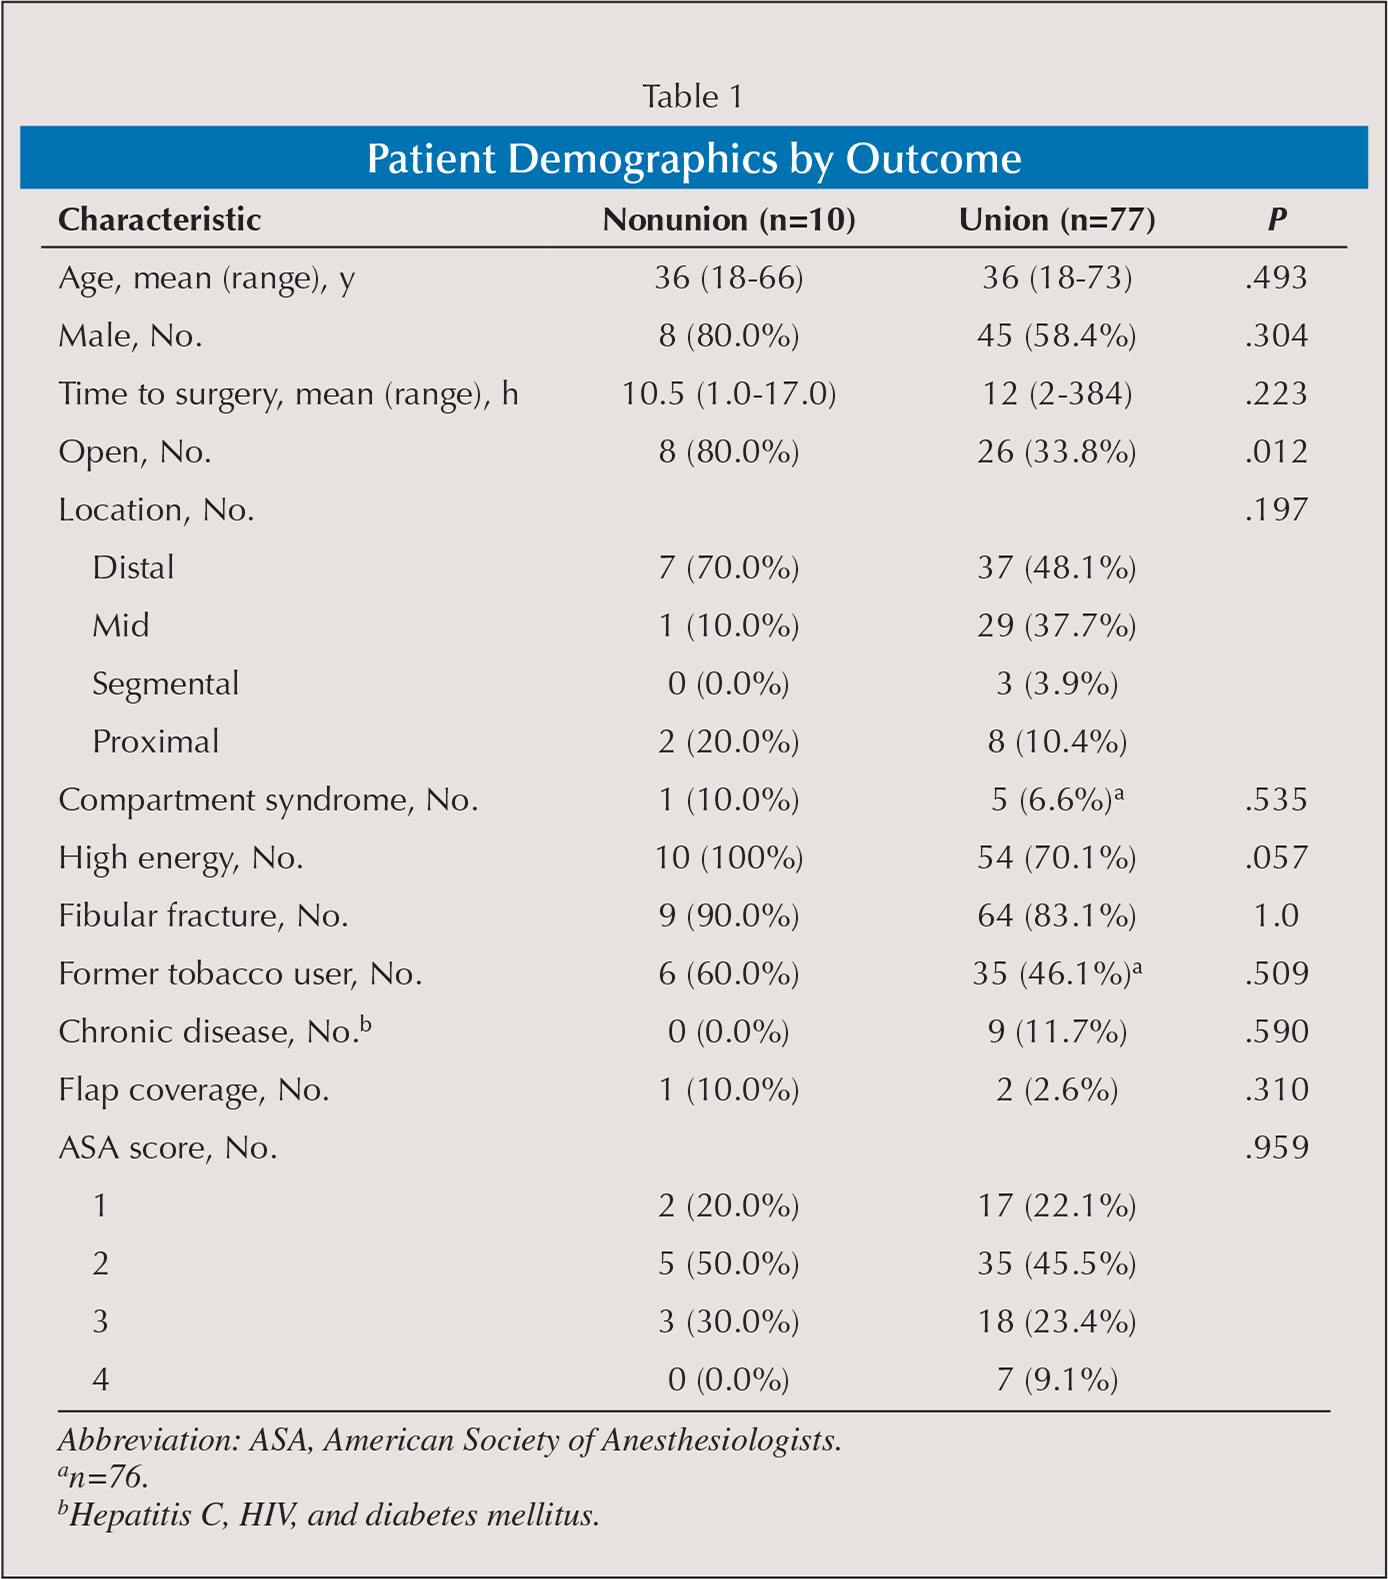 Patient Demographics by Outcome